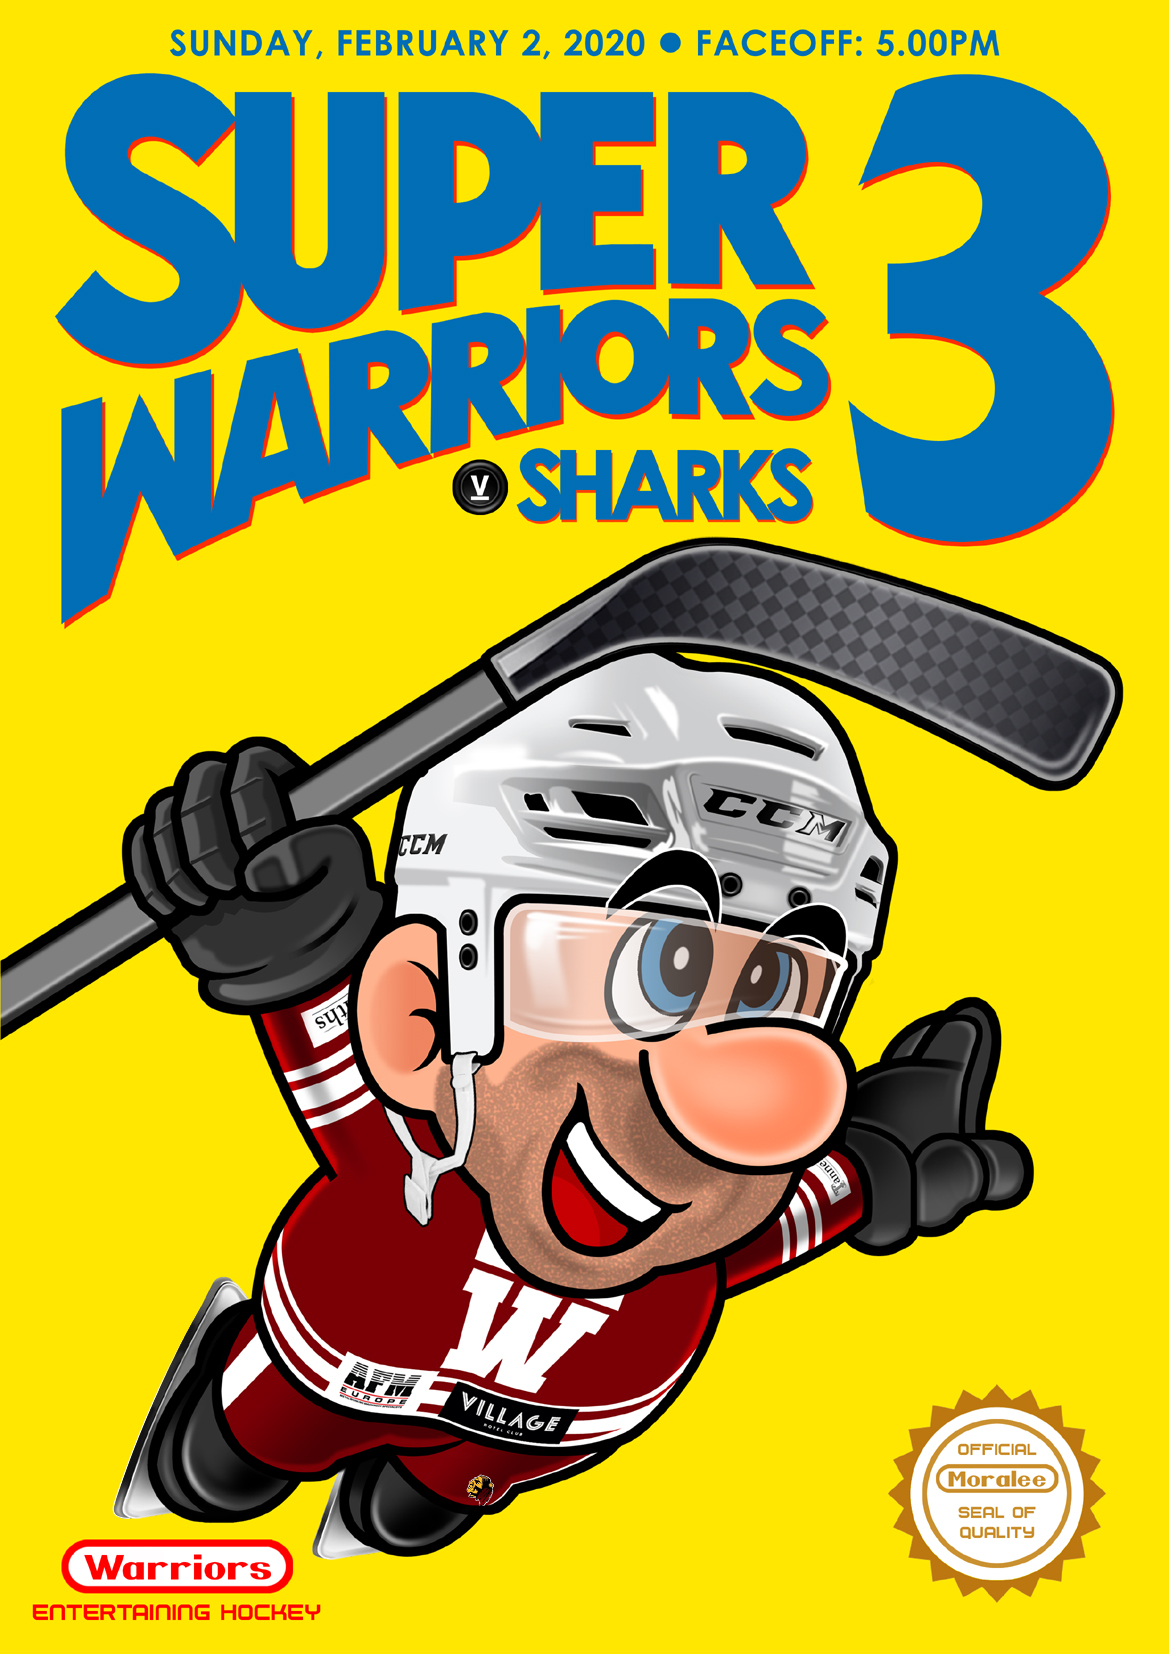 Whitley Warriors vs Solway Sharks @ Whitley Bay Ice Rink, Sunday 2 February 2020, face off 5pm